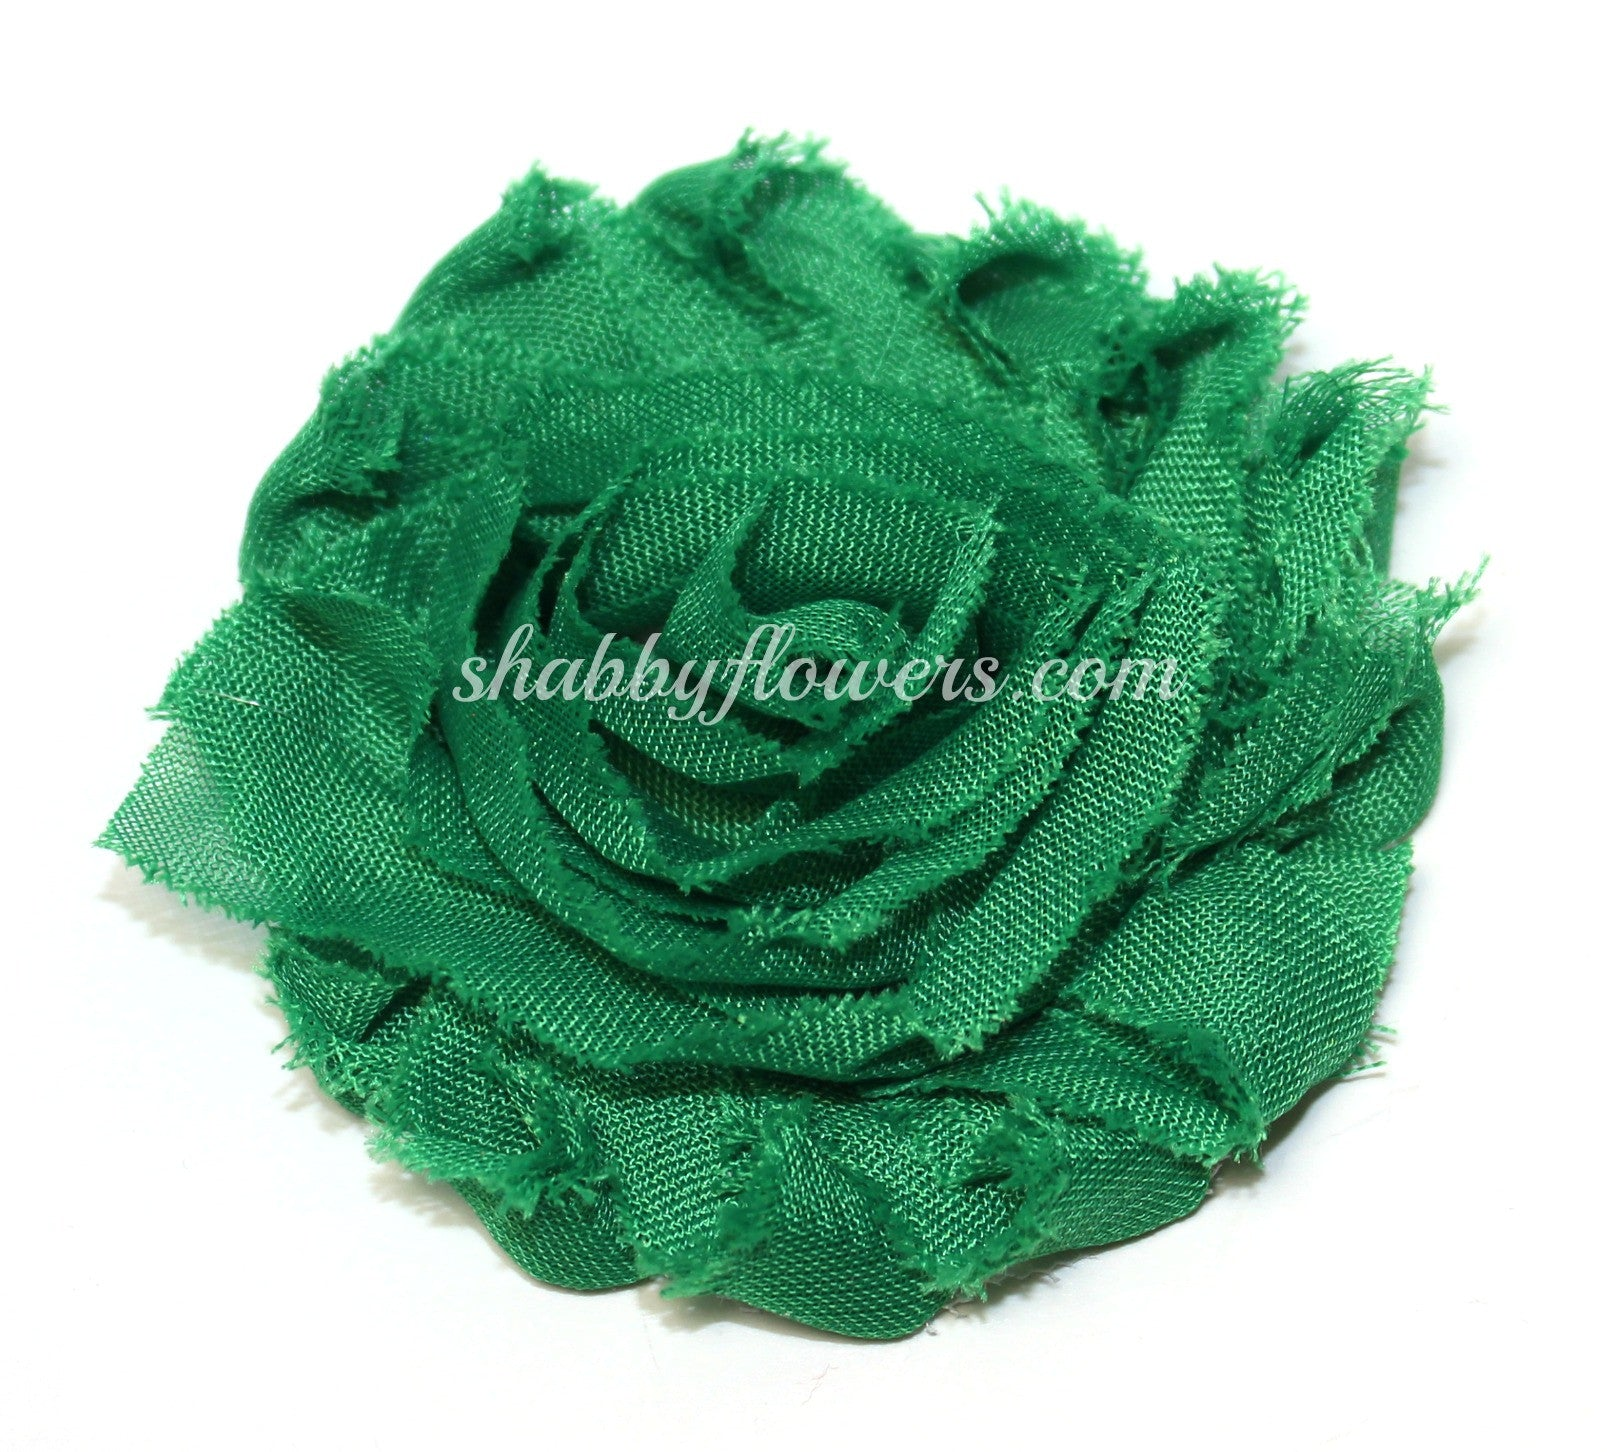 Shabby Chiffon Flower - Emerald Green - shabbyflowers.com